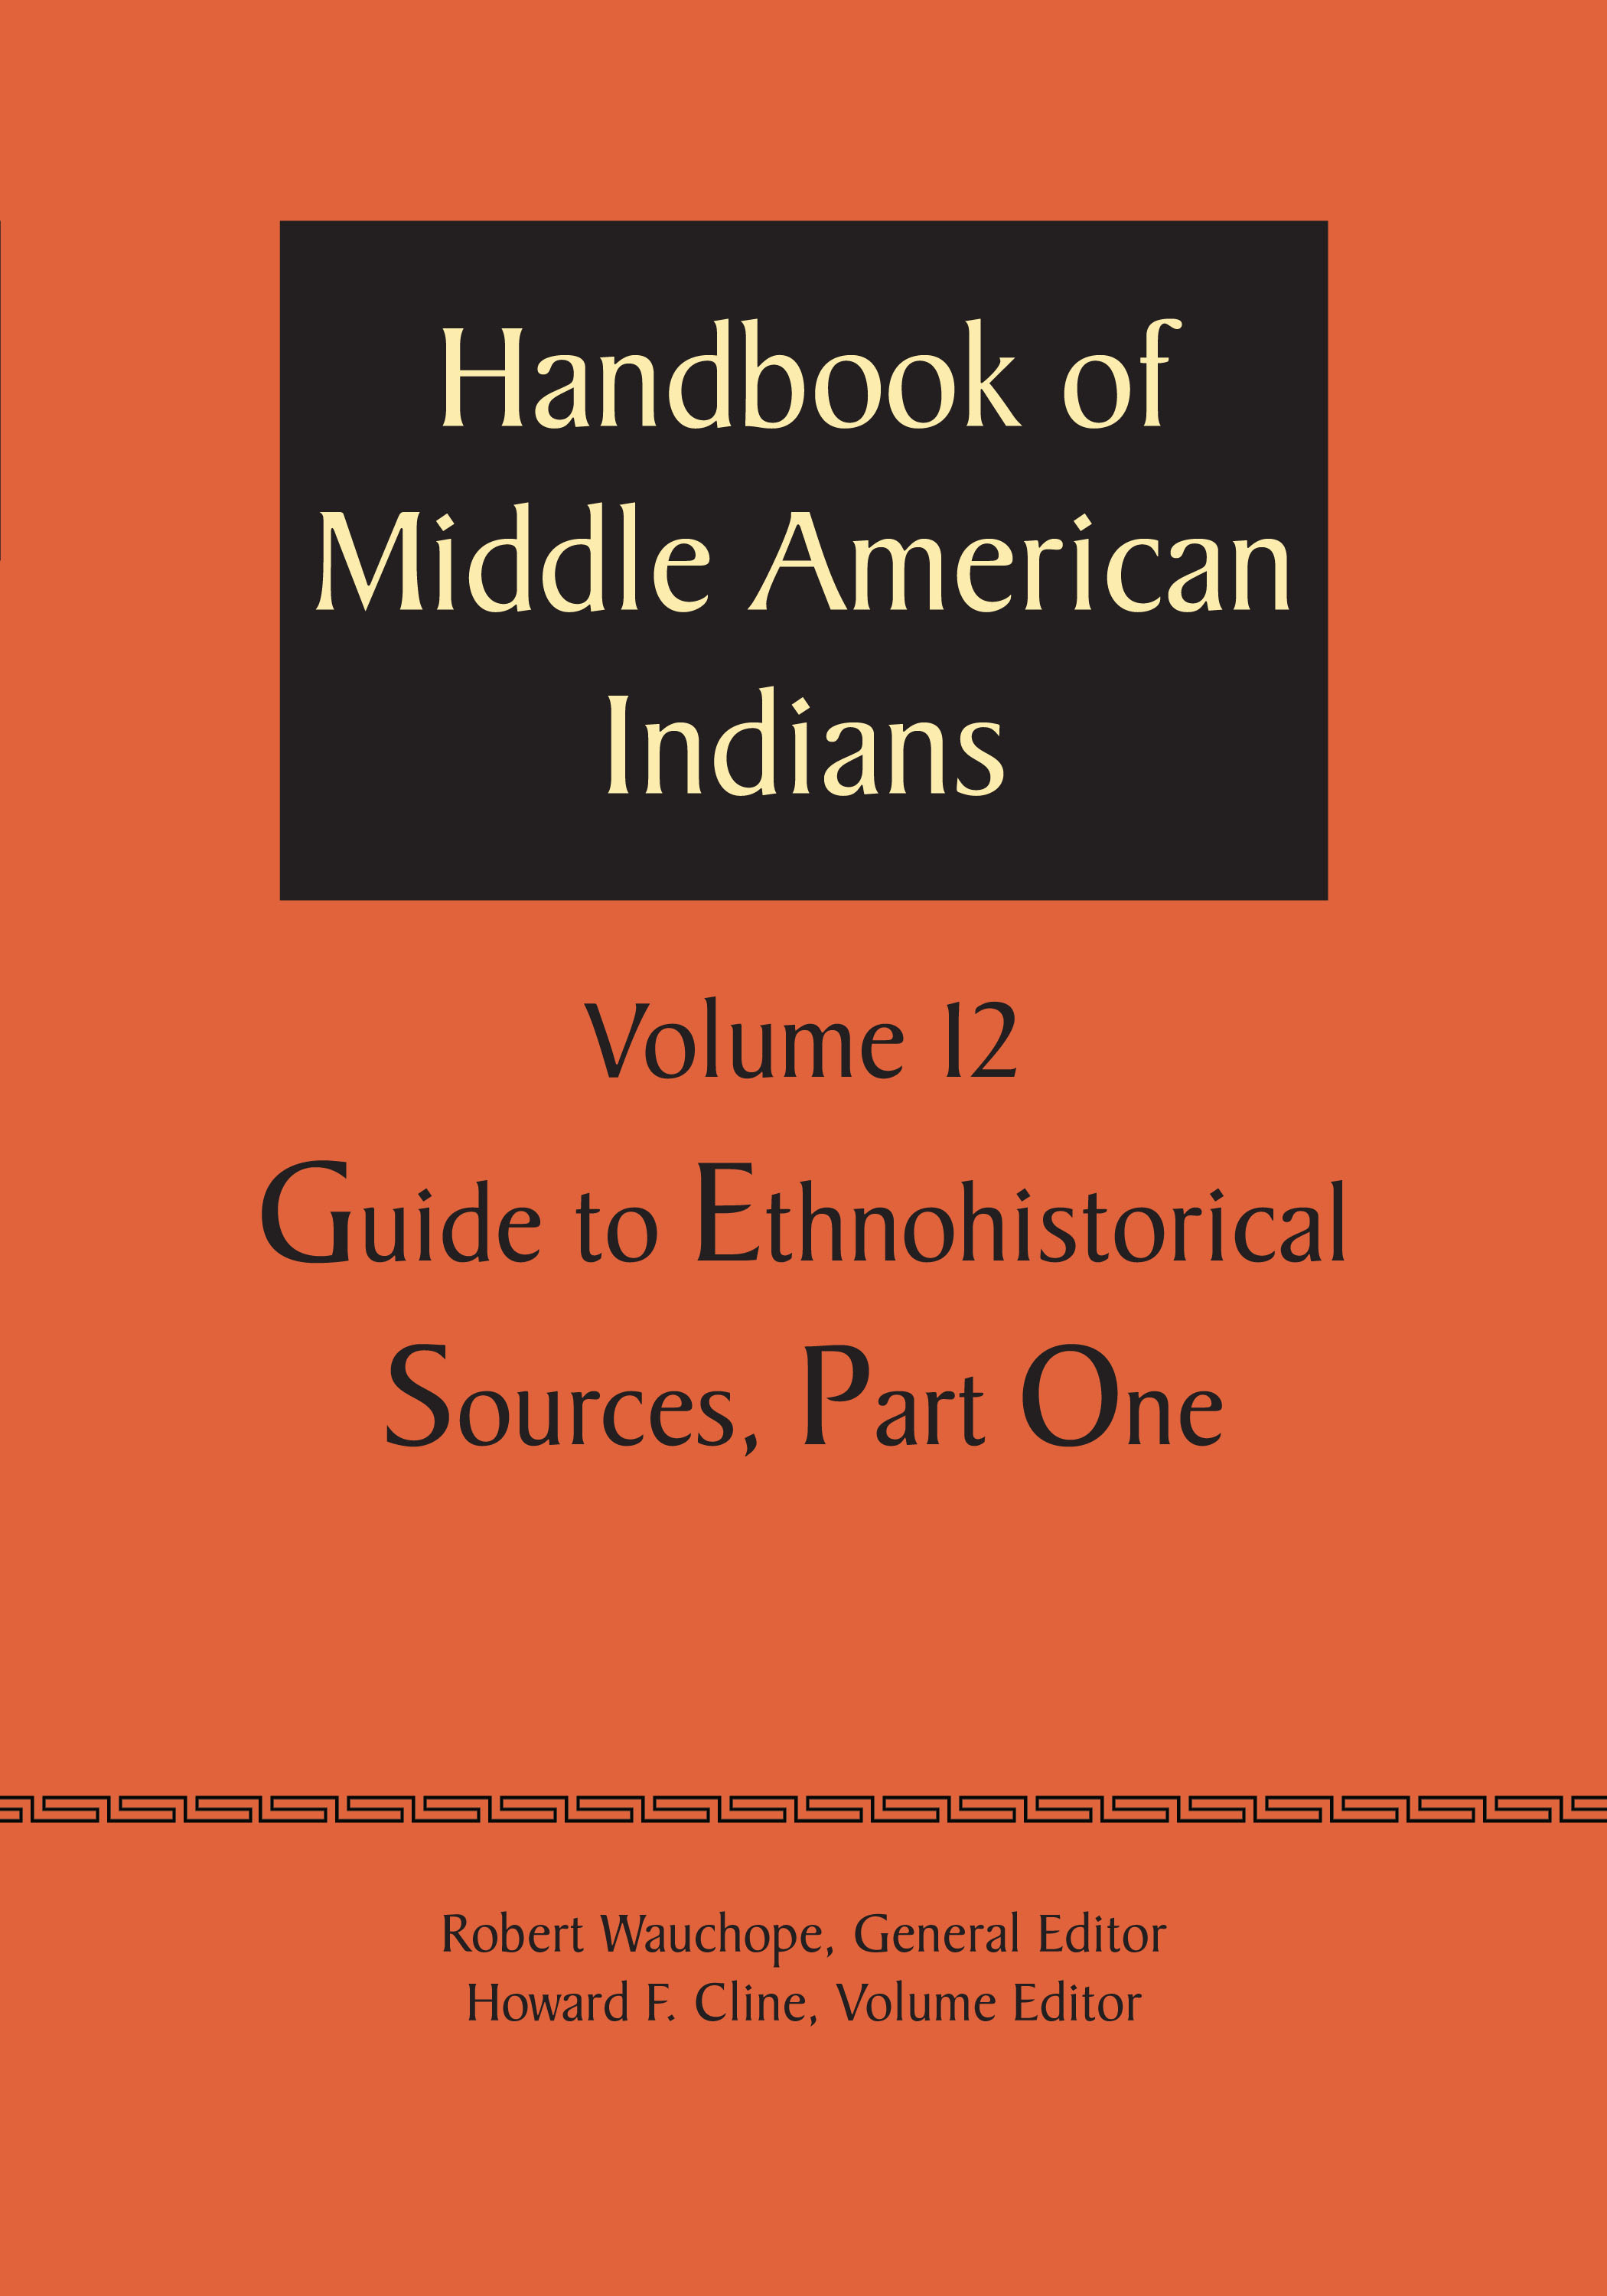 Cover of Handbook of Middle American Indians, Volume 12